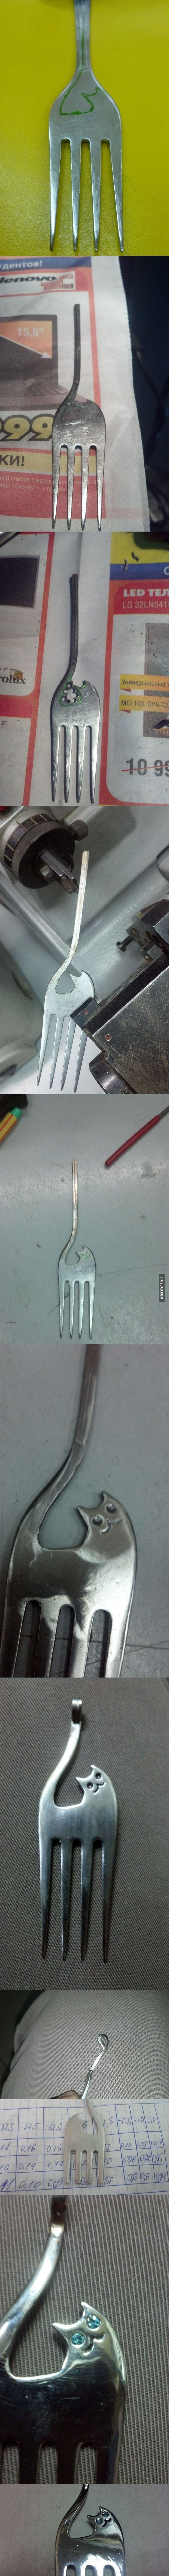 Please don't show this to my wife. I'd like to keep at least one fork in my house.